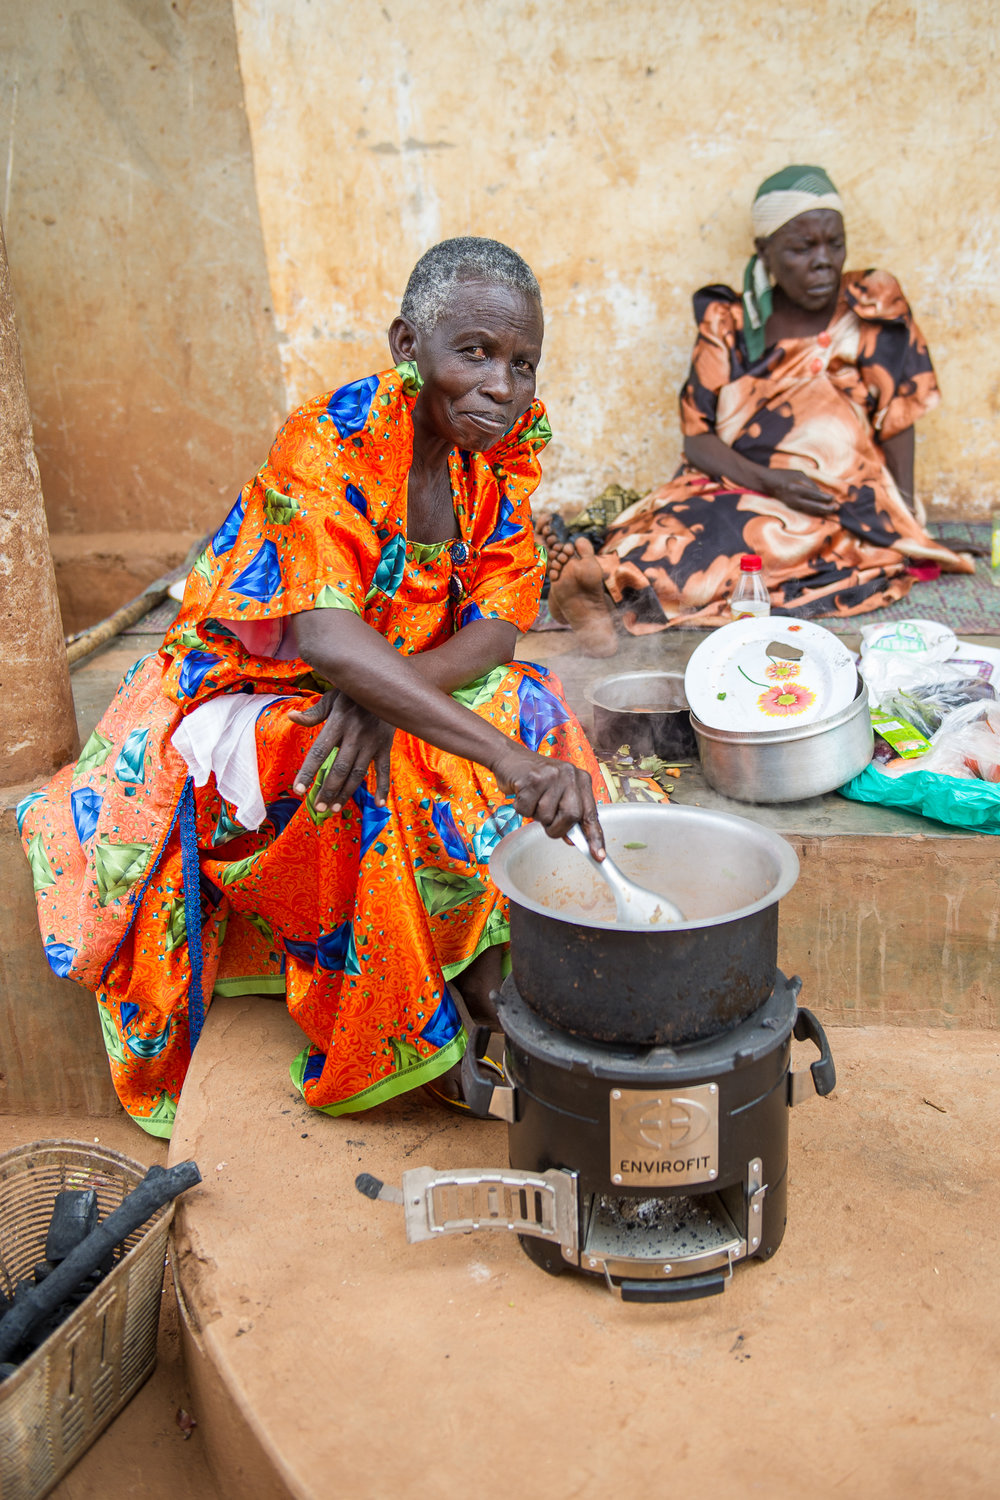 Jane uses a clean cookstove.